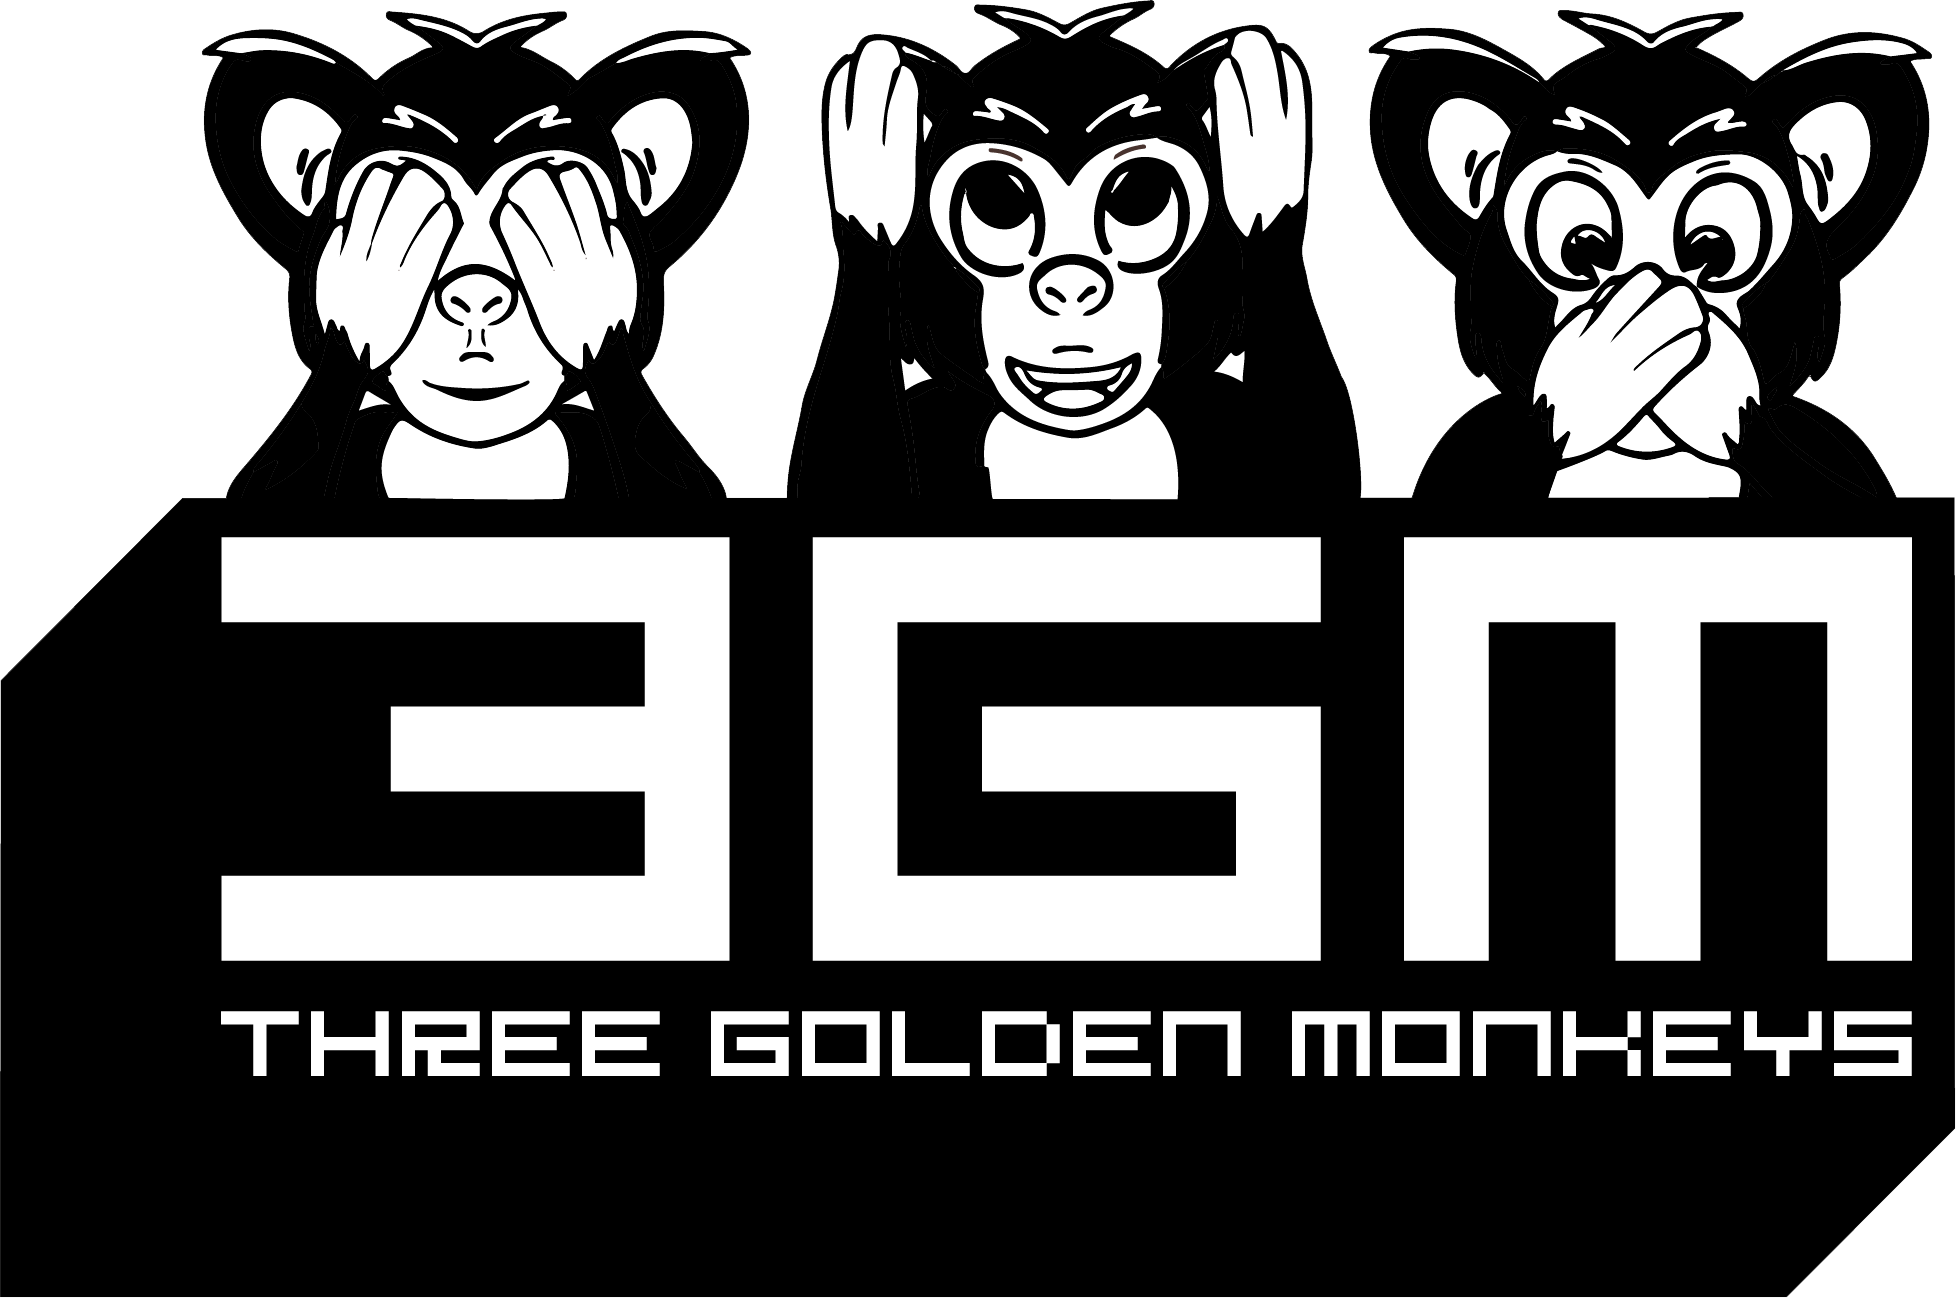 juegos android gratis Archives - Three Golden Monkeys Lab